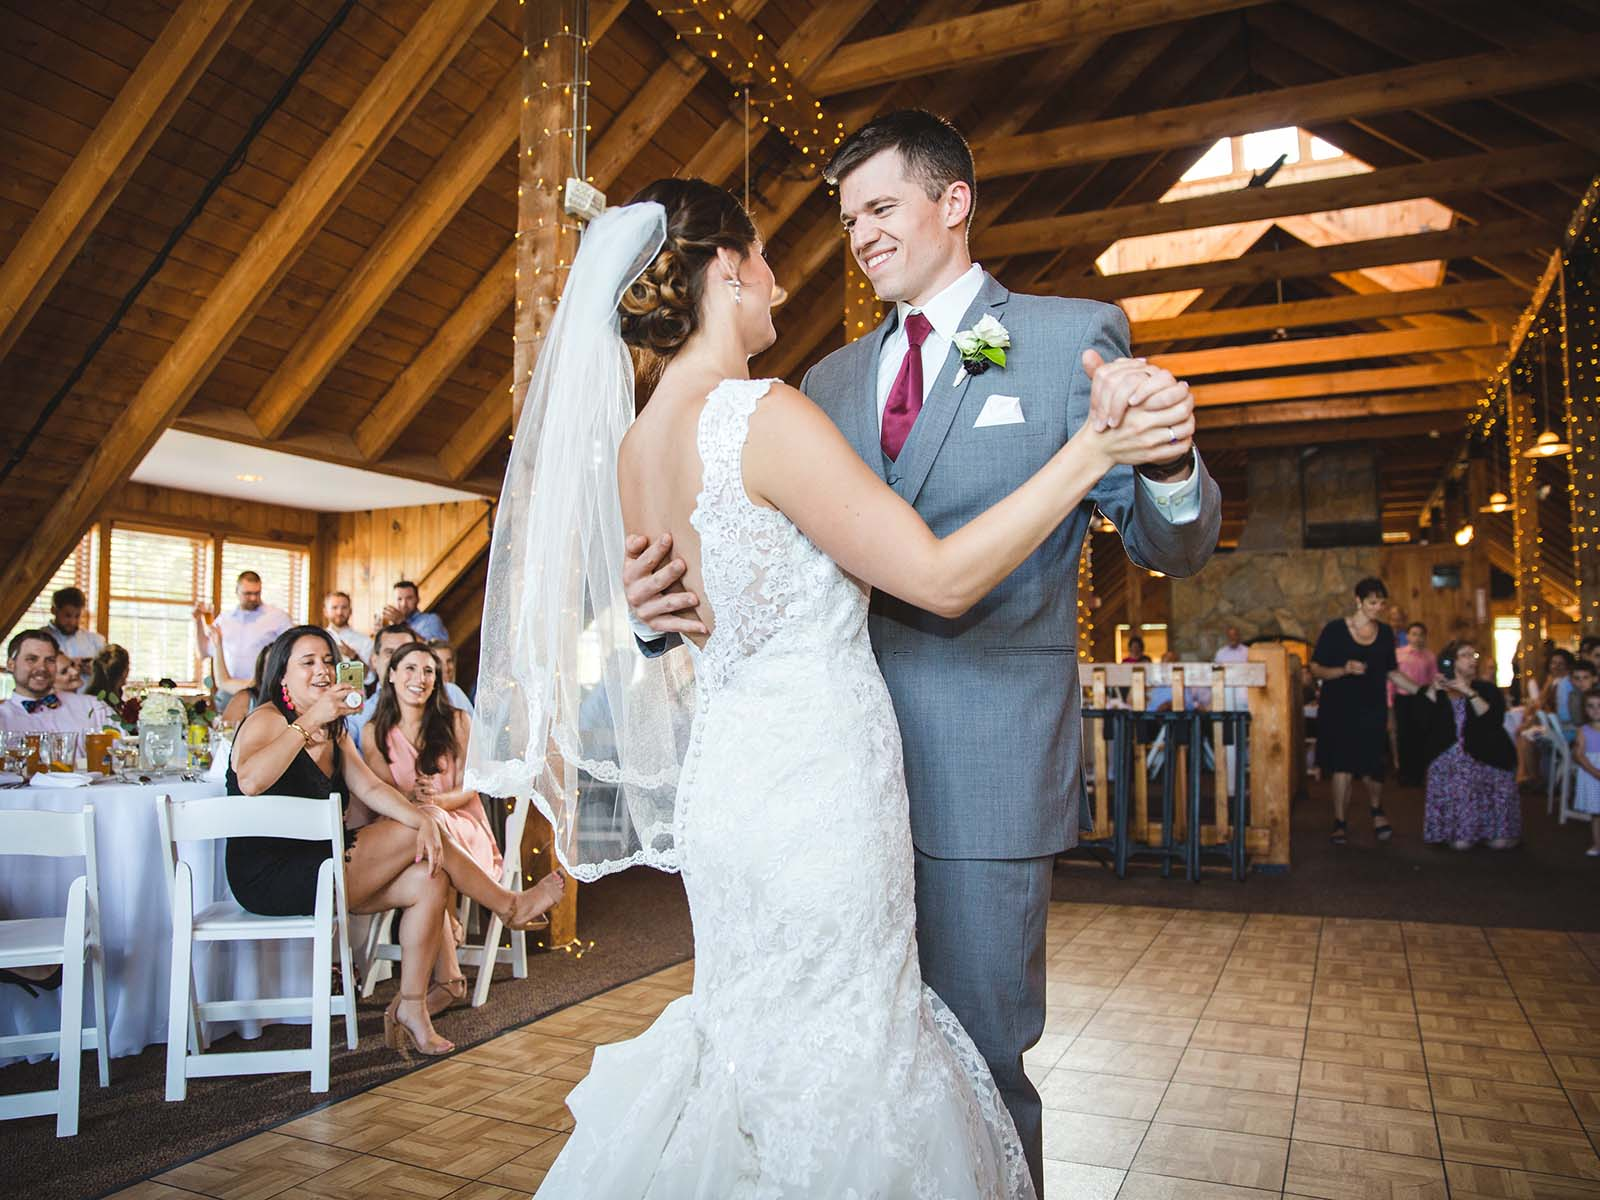 A bride and groom celebrating with their first dance.